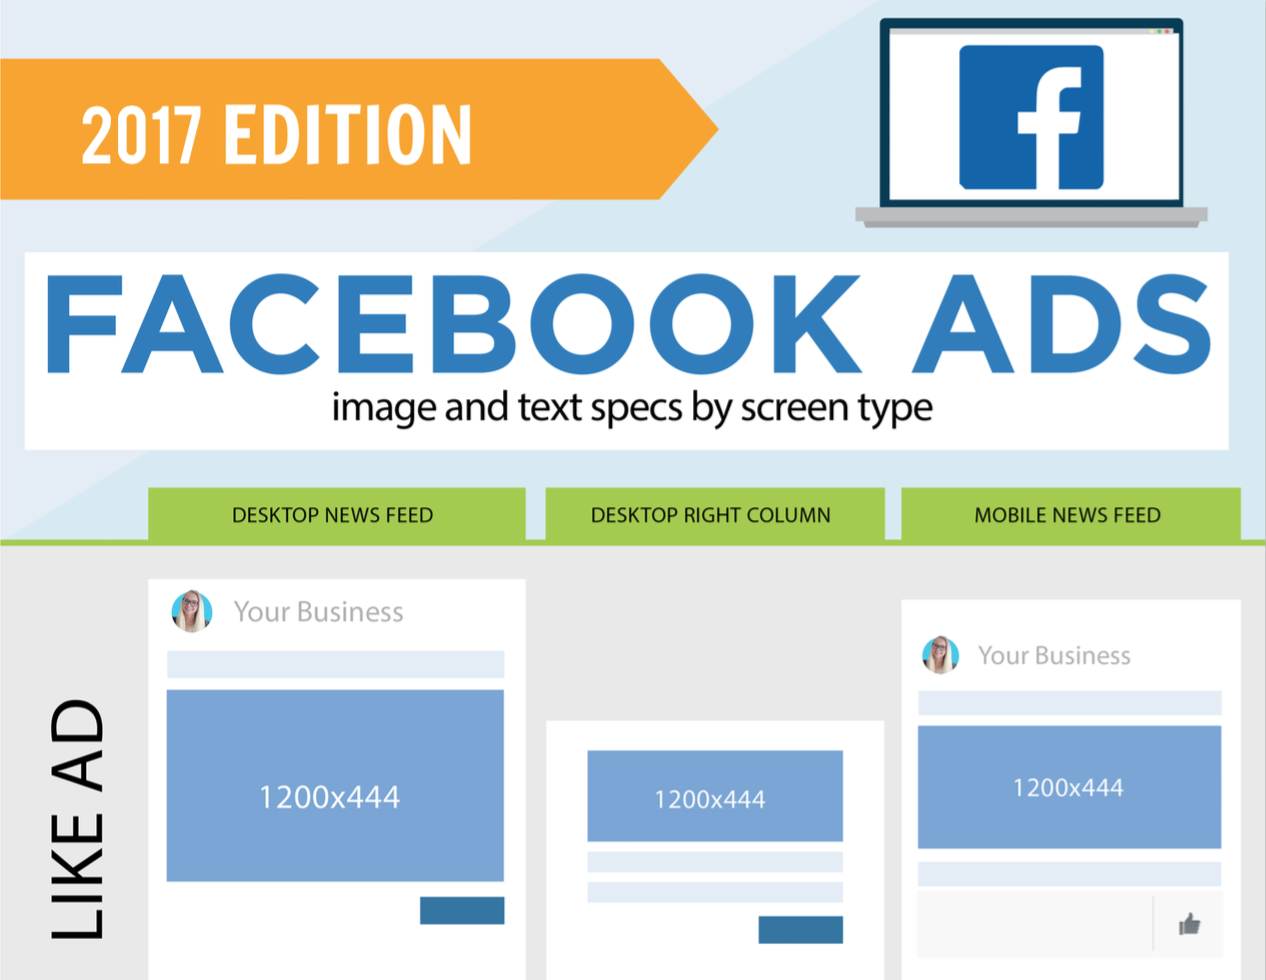 facebook ad formats 2017 cat howellfacebook ad formats 2017 \u2013 the latest specs and sizes for all the fb ad formats available